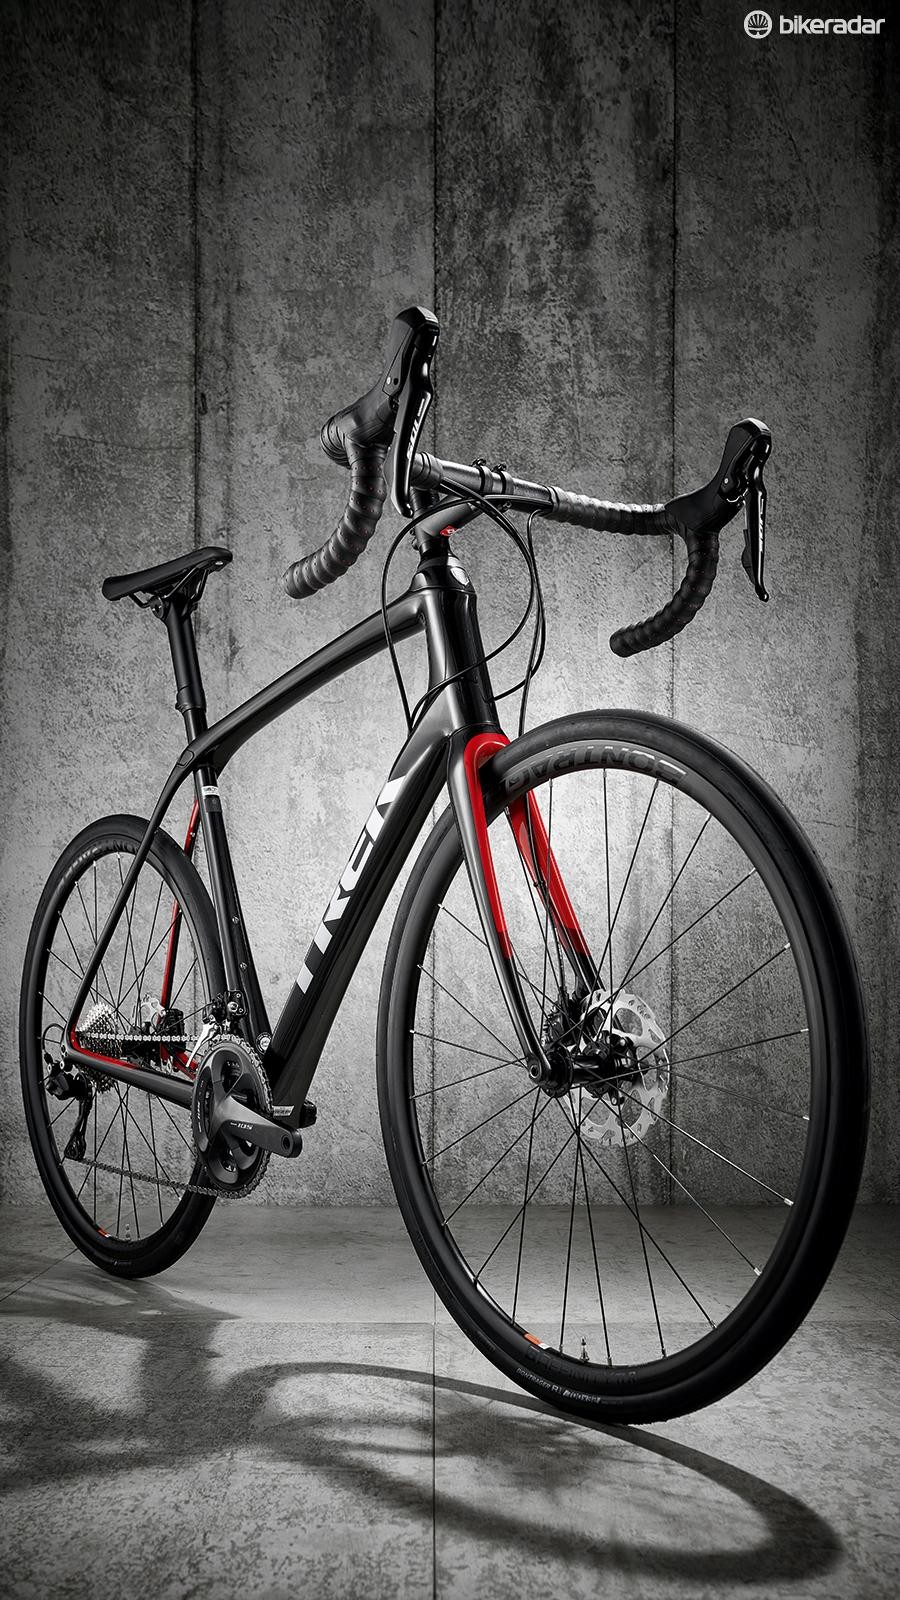 ec006d9ffd2 Trek's Domane SL 5 Disc Courtesy. All but the most extreme gravel tracks  fall well within its grasp